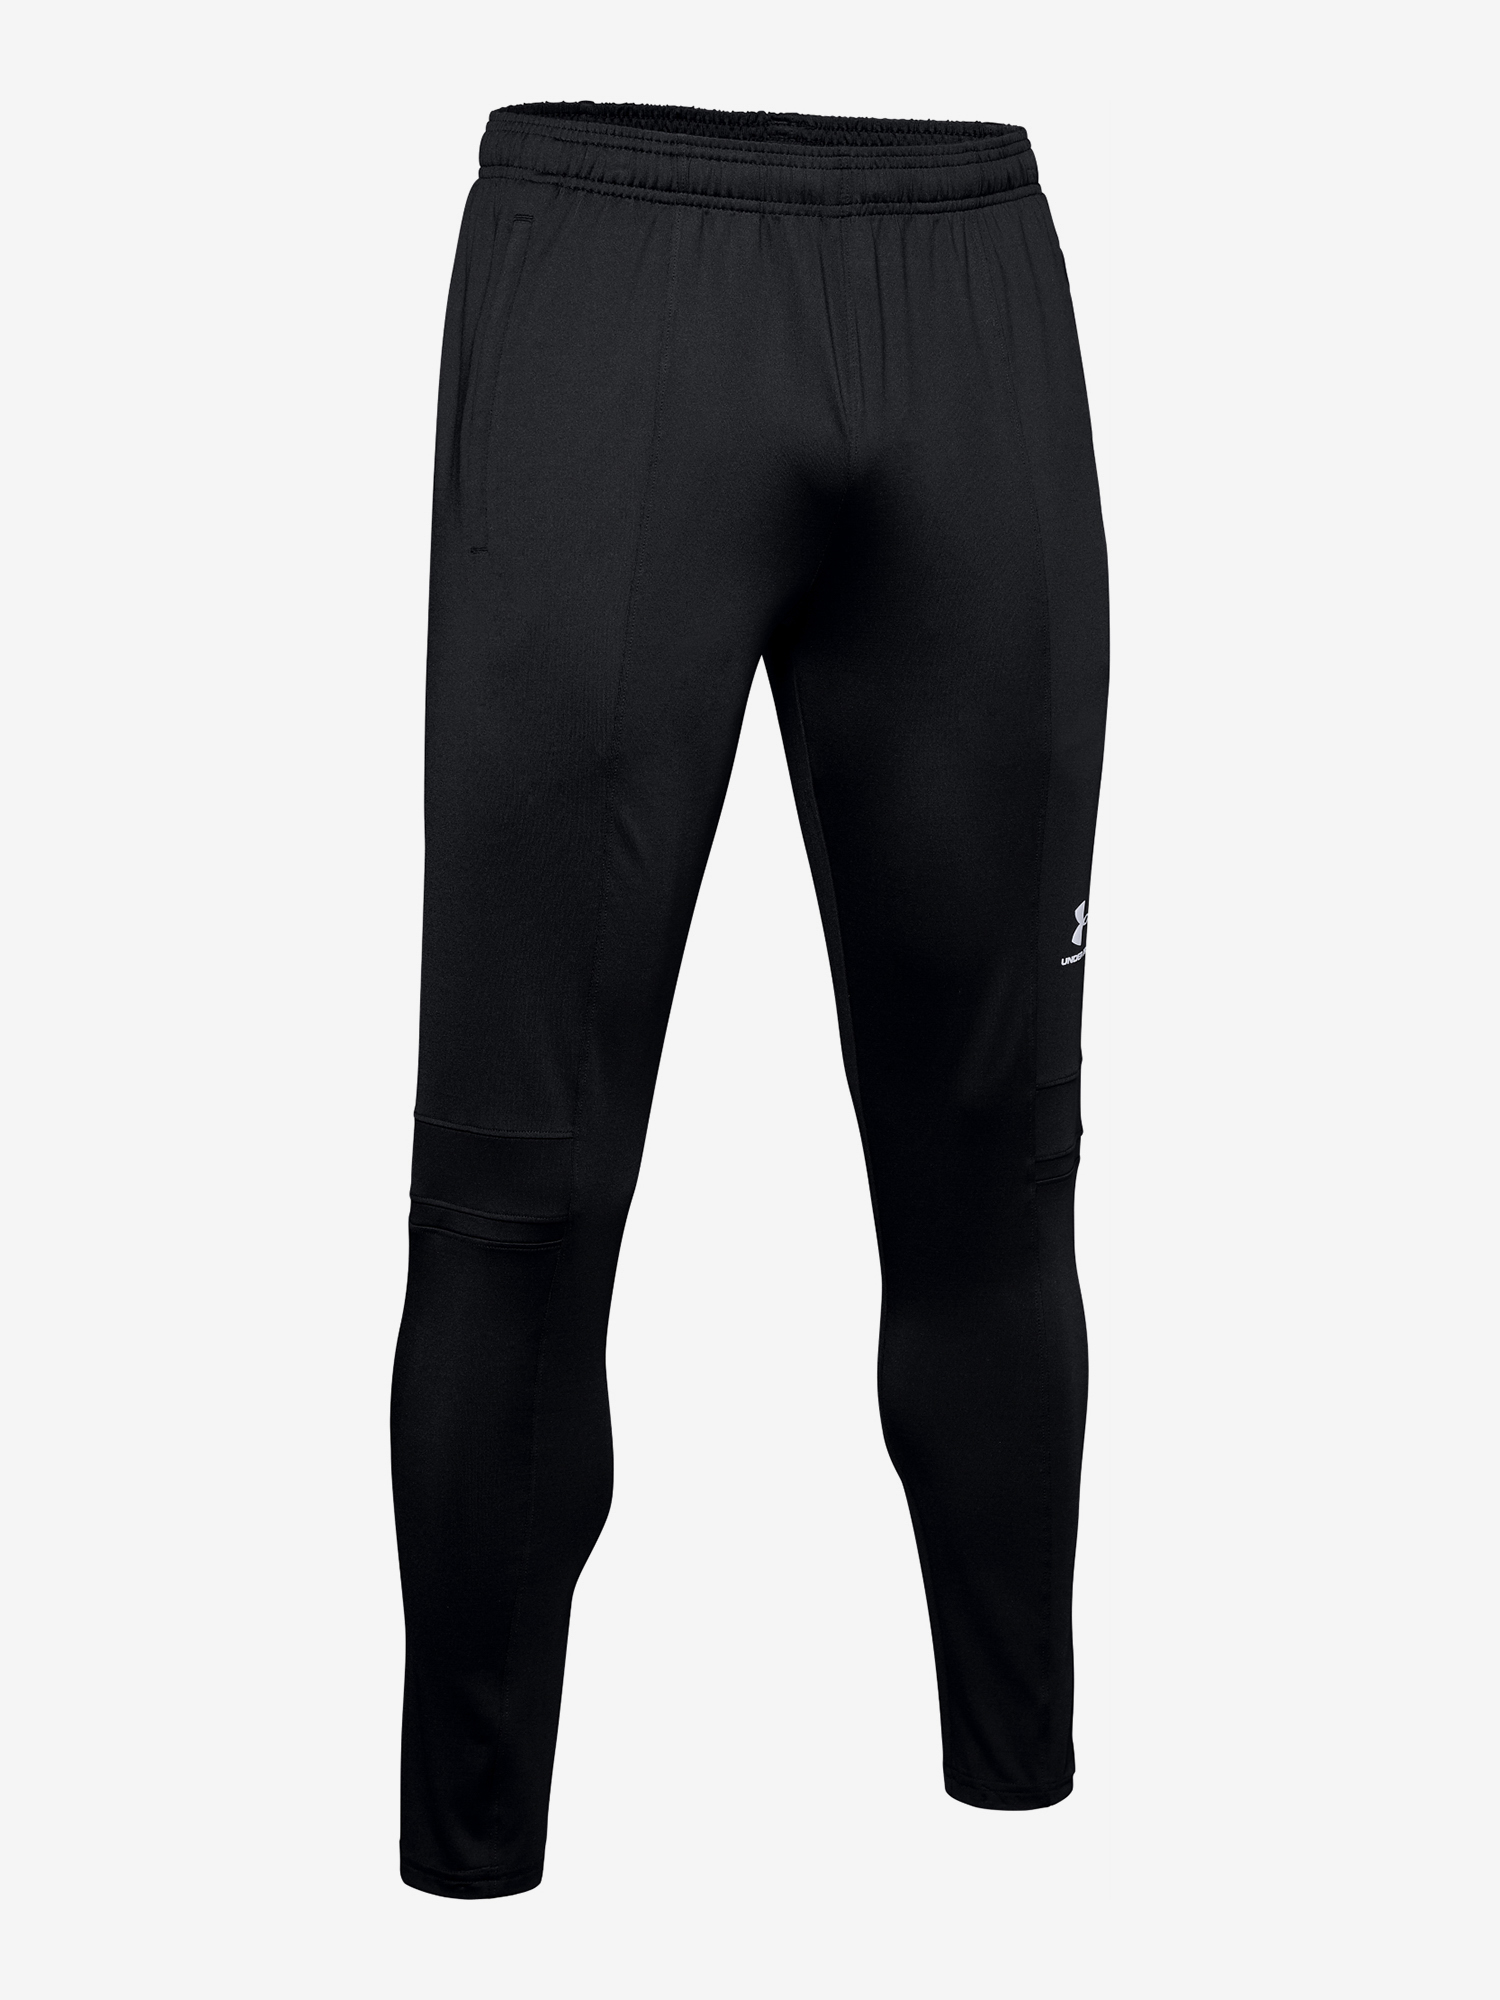 Tepláky Under Armour Challenger Iii Training Pant-Blk (3)